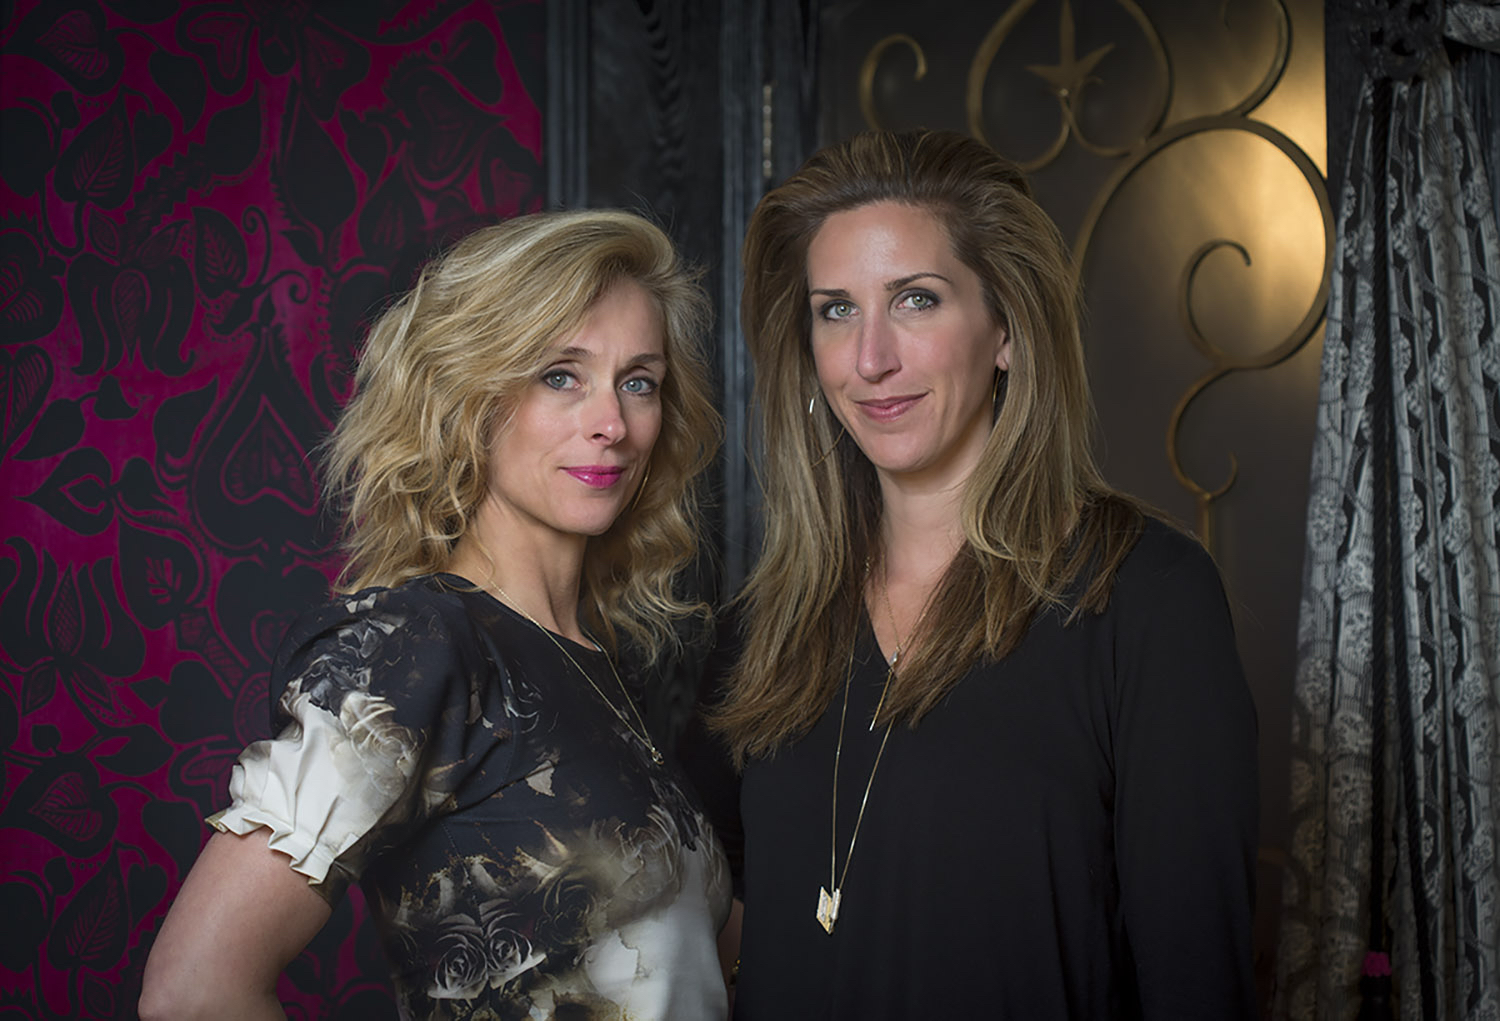 DXV_design_panel_tami_and_krista_headshots_high_res_2.jpg